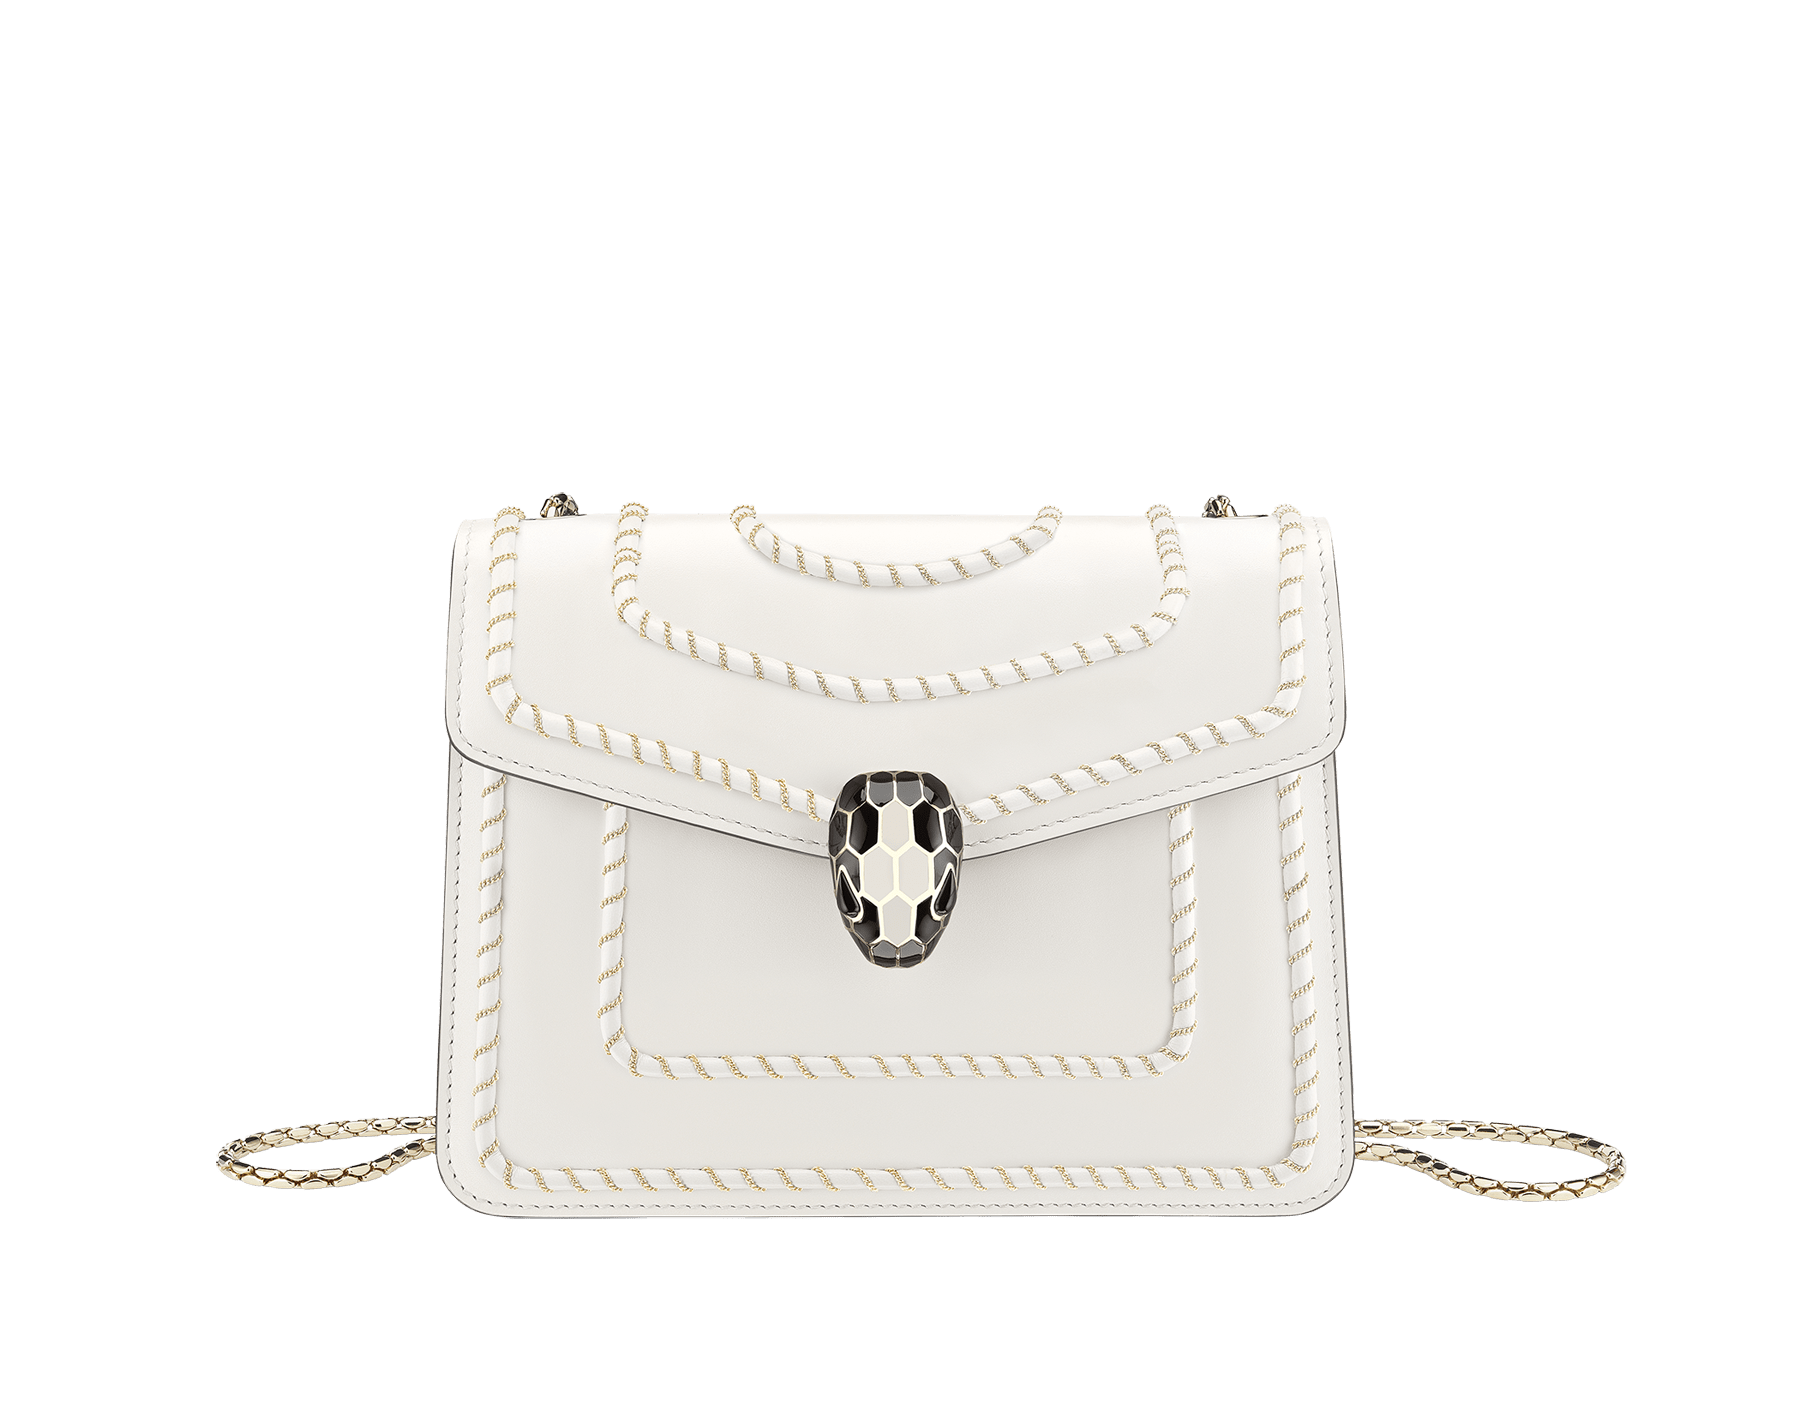 """""""Serpenti Forever"""" crossbody bag in black calf leather, featuring a Woven Chain motif. Iconic snakehead closure in light gold plated brass enriched with shiny black enamel and black onyx eyes 422-WC image 1"""